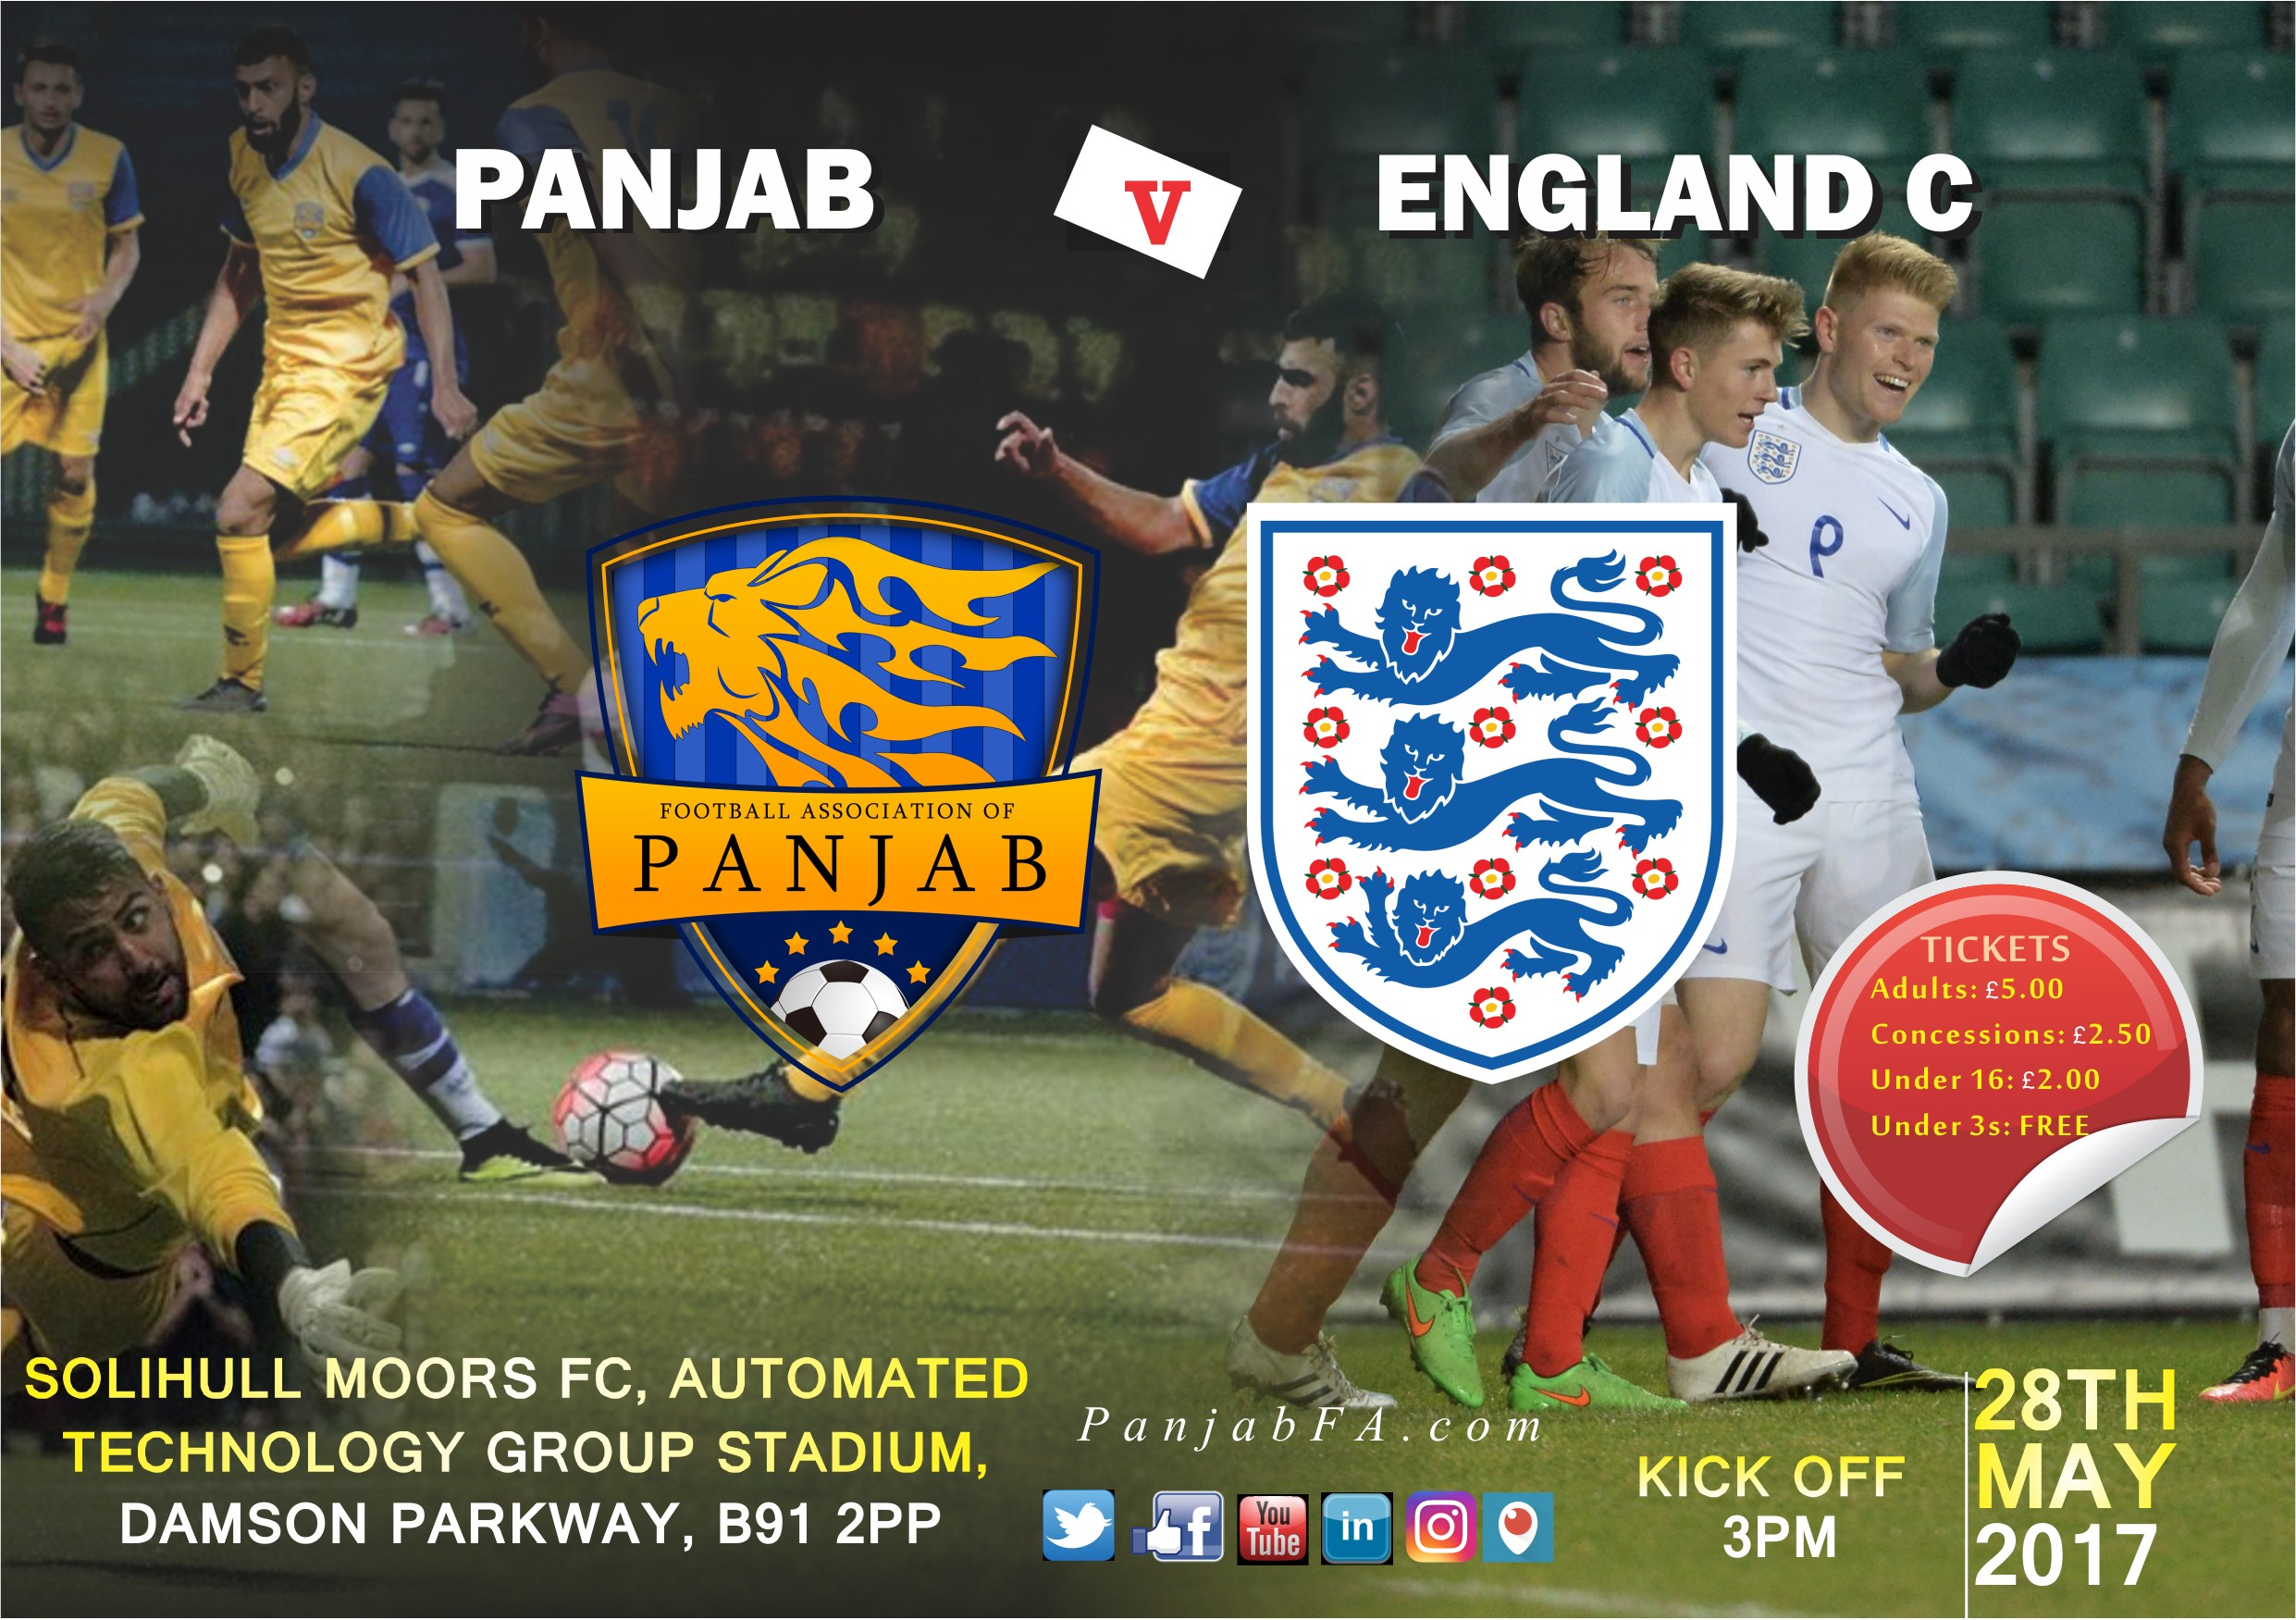 Panjab vs England C venue changed to Solihull Moors FC